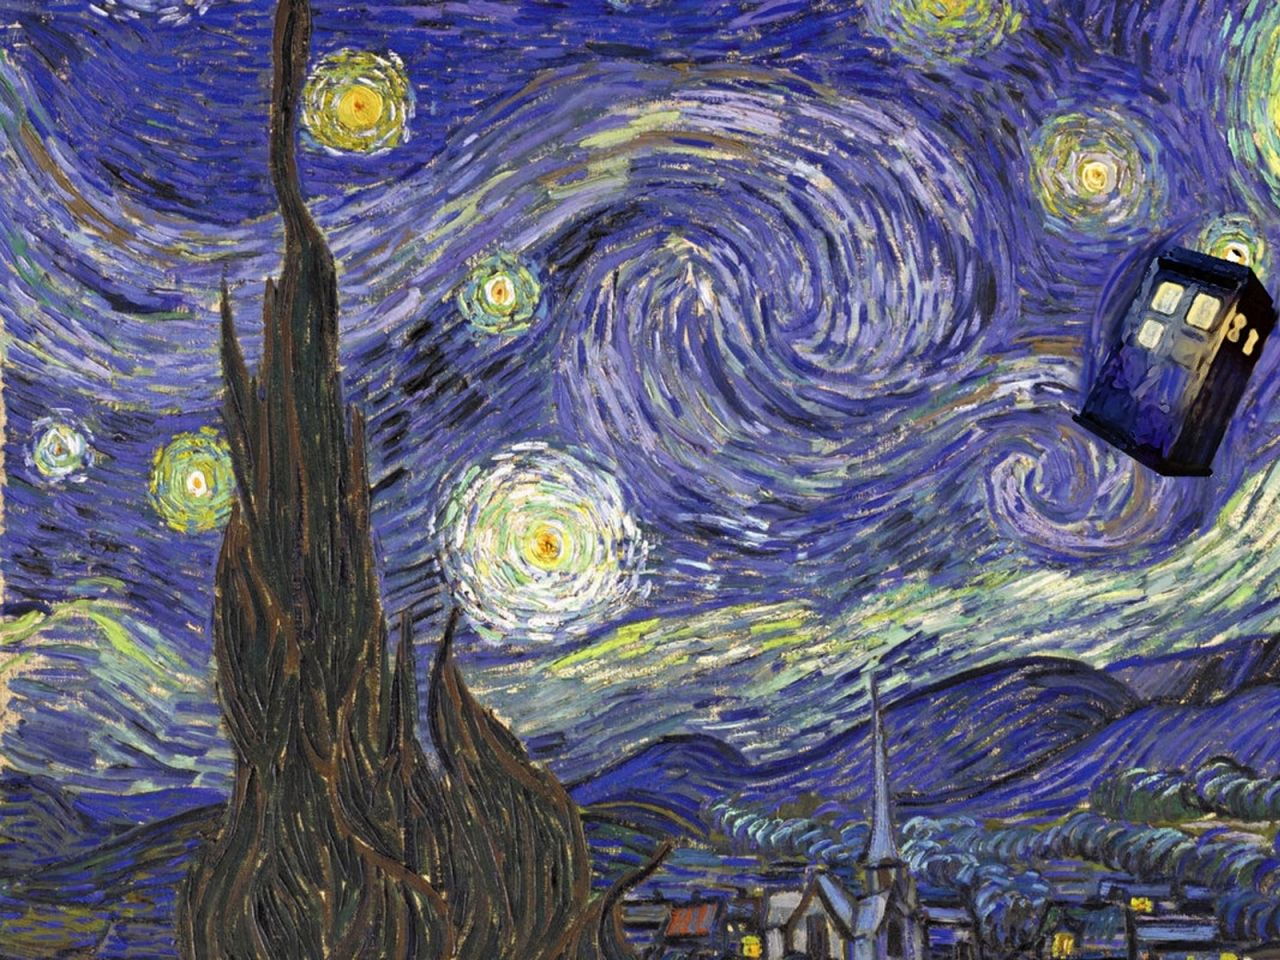 Dr Who Van Gogh Wallpapers Top Free Dr Who Van Gogh Backgrounds